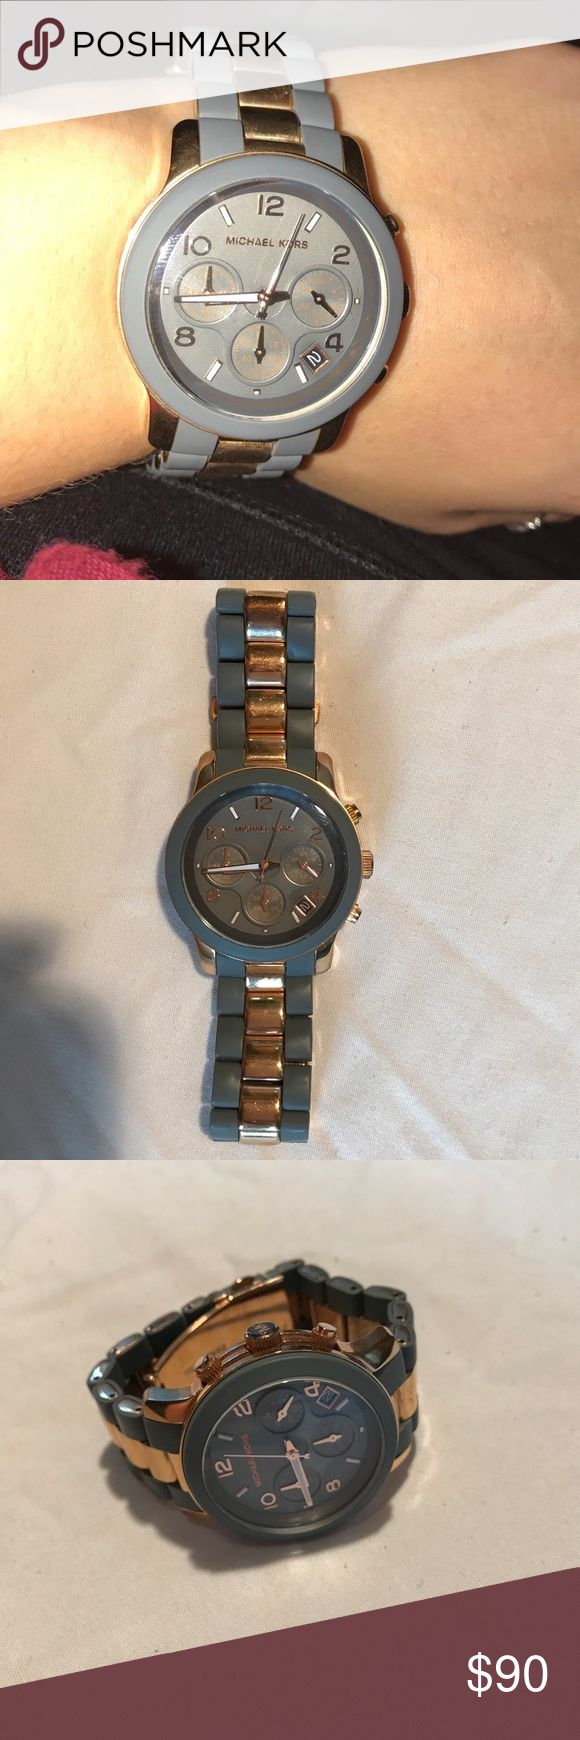 Michael Kors Grey and Rose Gold Watch Beautiful MK watch in great condition!! Looks great on the wrist and is a great accessory to all outfits! I am open to offers! KORS Michael Kors Accessories Watches